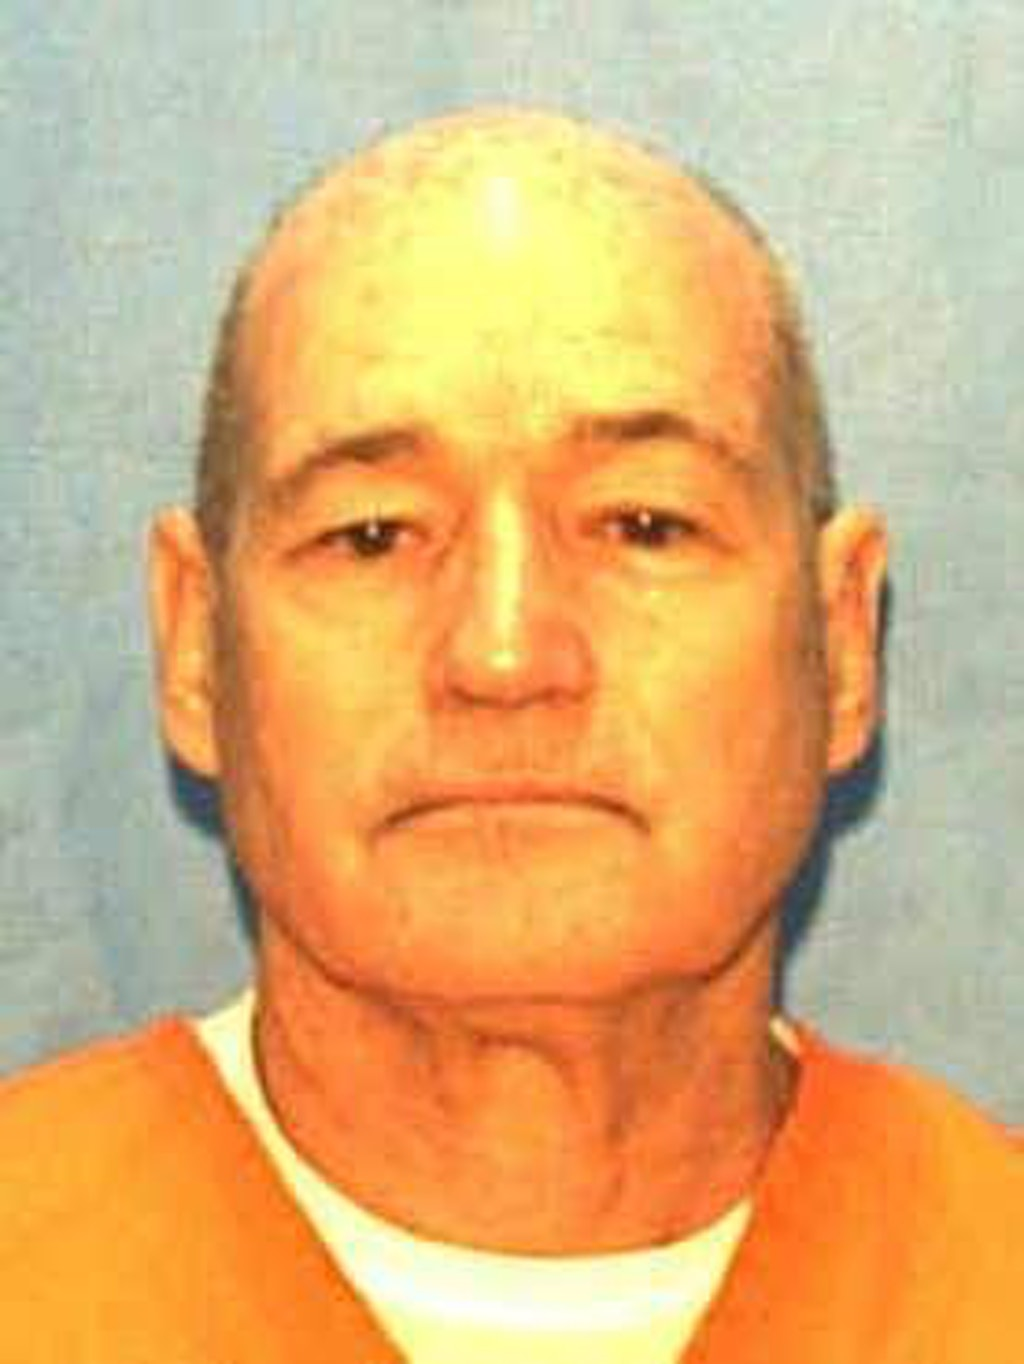 POSSIBLE INNOCENCE: Florida Supreme Court Overturns Conviction and Death Sentence Based on New Evidence